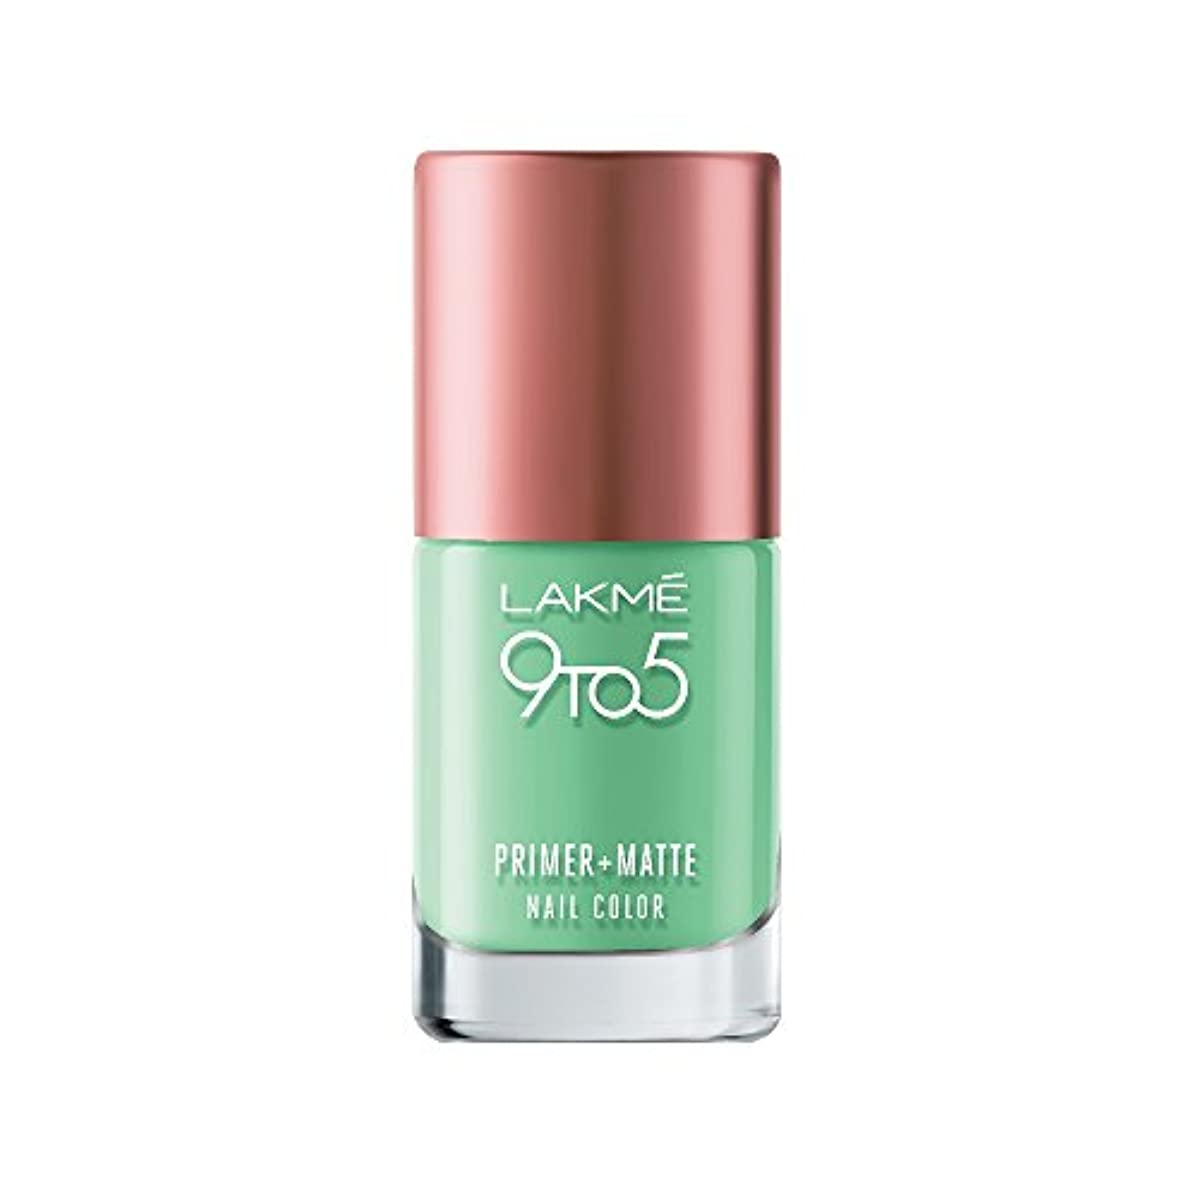 Lakme 9 to 5 Primer and Matte Nail Color, Green, 9ml